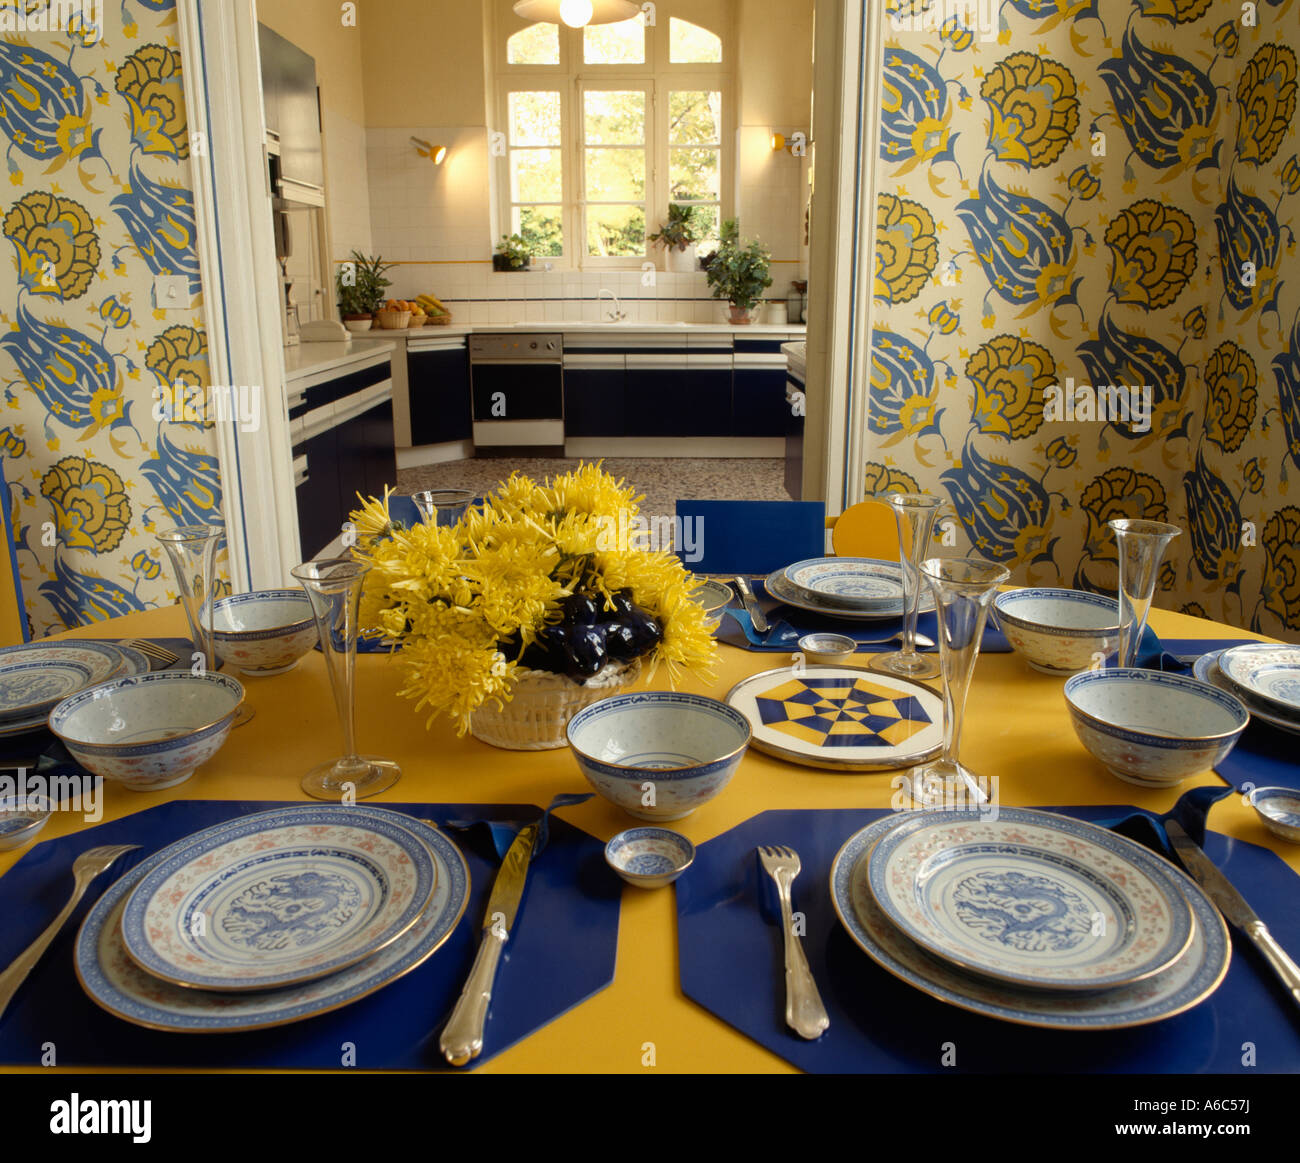 Delightful Blue Napkins And Crockery On Yellow Tablecloth In Diningroom With Yellow  And Blue Patterned Wallpaper And Open Door To Kitchen